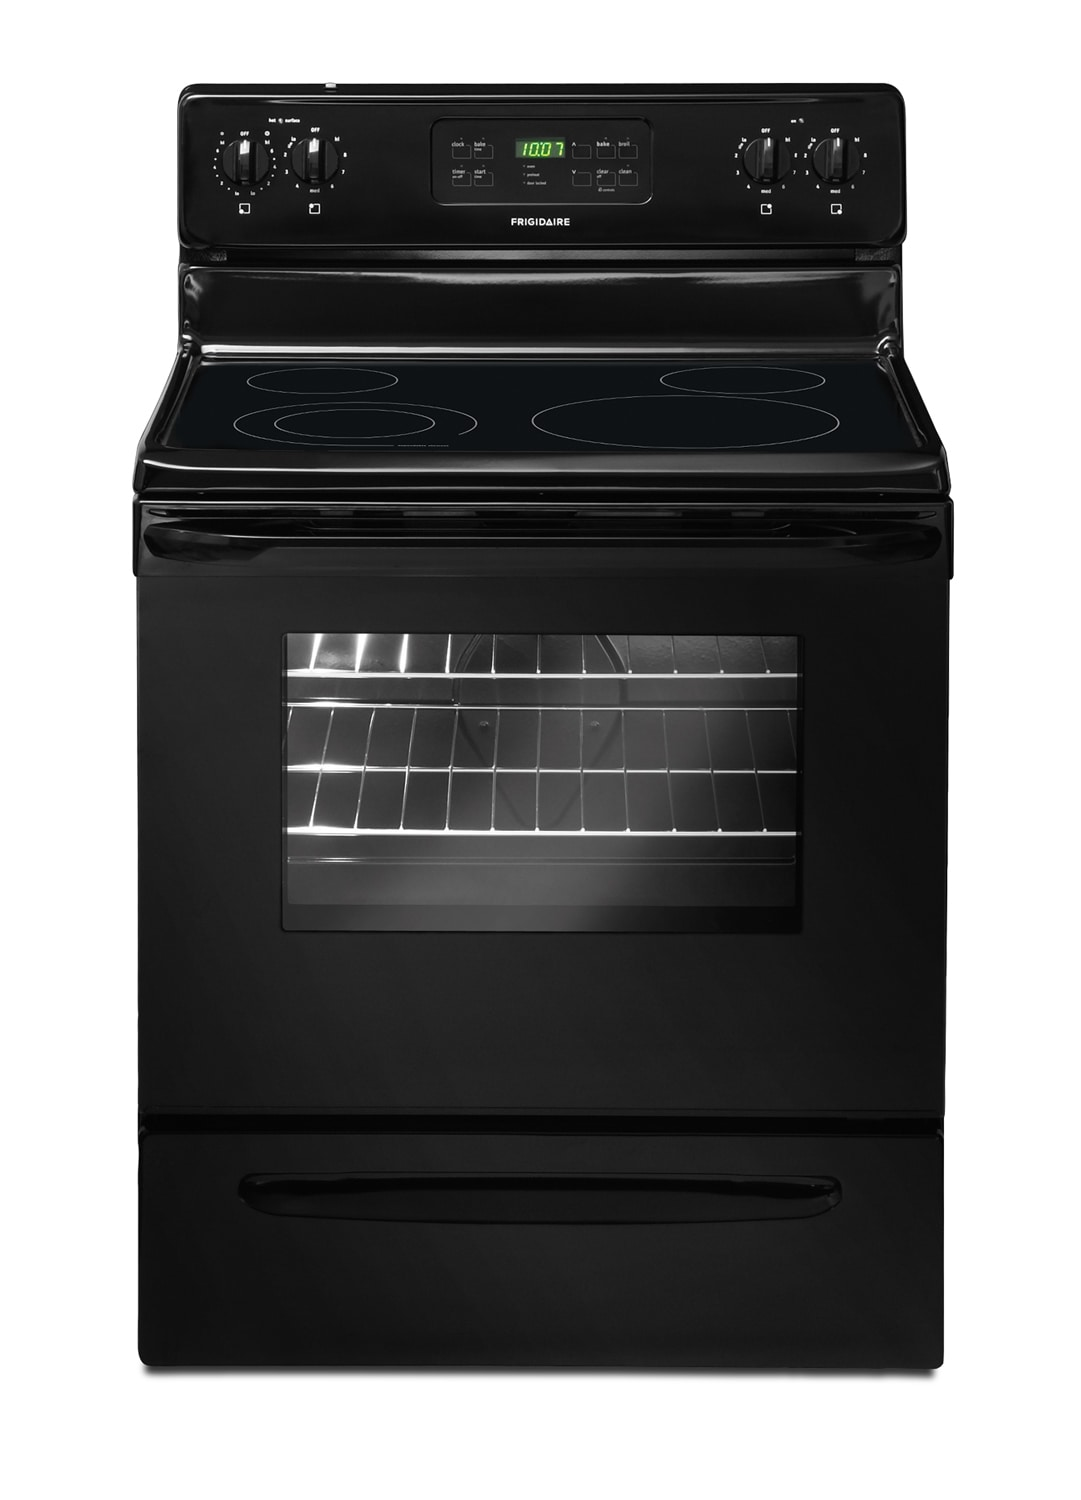 Frigidaire Black Freestanding Electric Range (5.3 Cu. Ft.) - CFEF3018LB